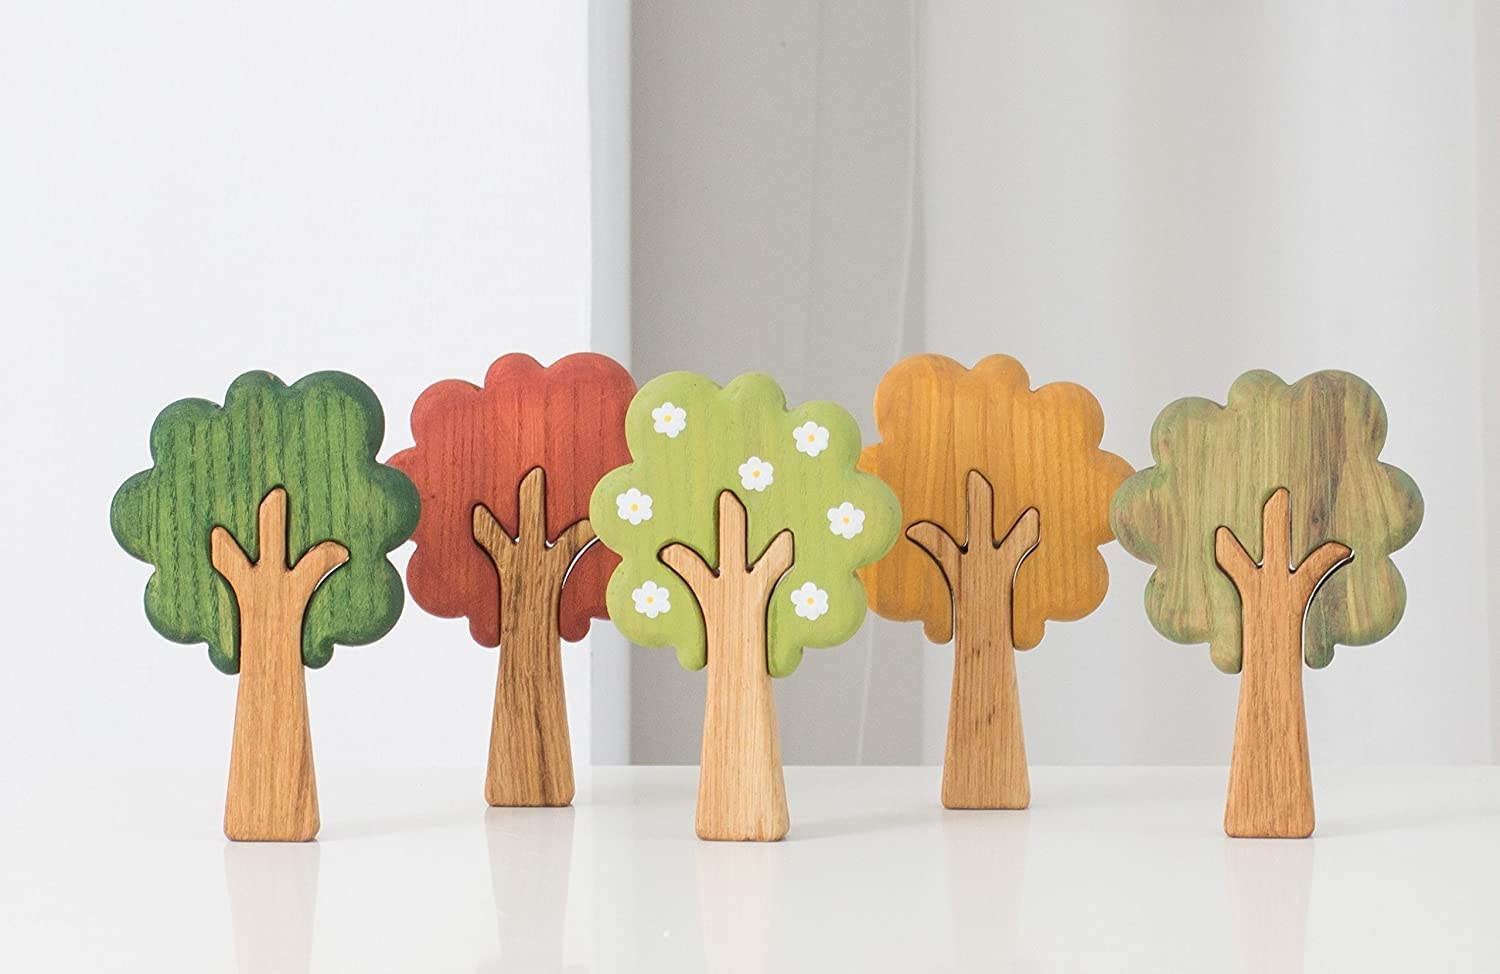 Set of season wood trees (5pcs) A good learning toy for toddlers and preschoolers to explore seasons and add to waldorf nature table